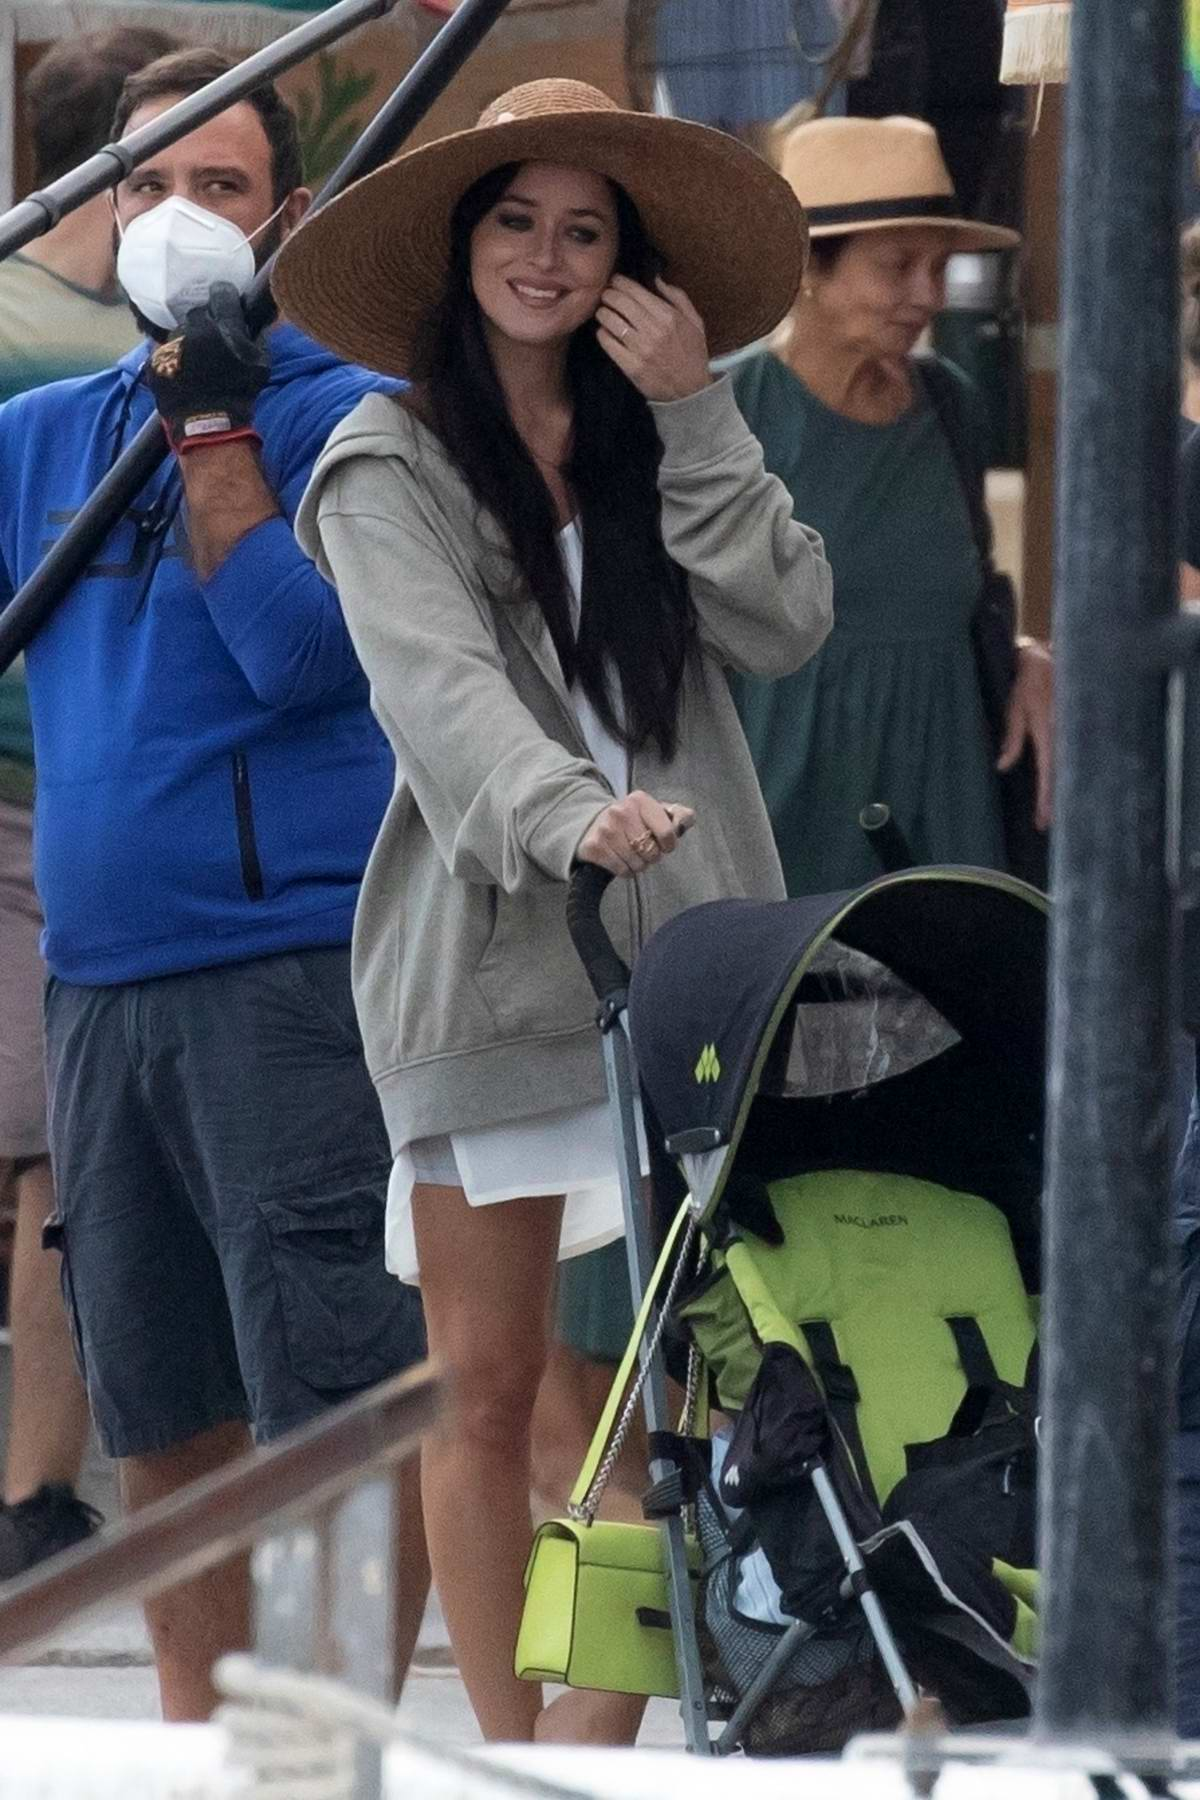 Dakota Johnson spotted filming on the sets of 'The Lost Daughter' in Spetses Island, Greece